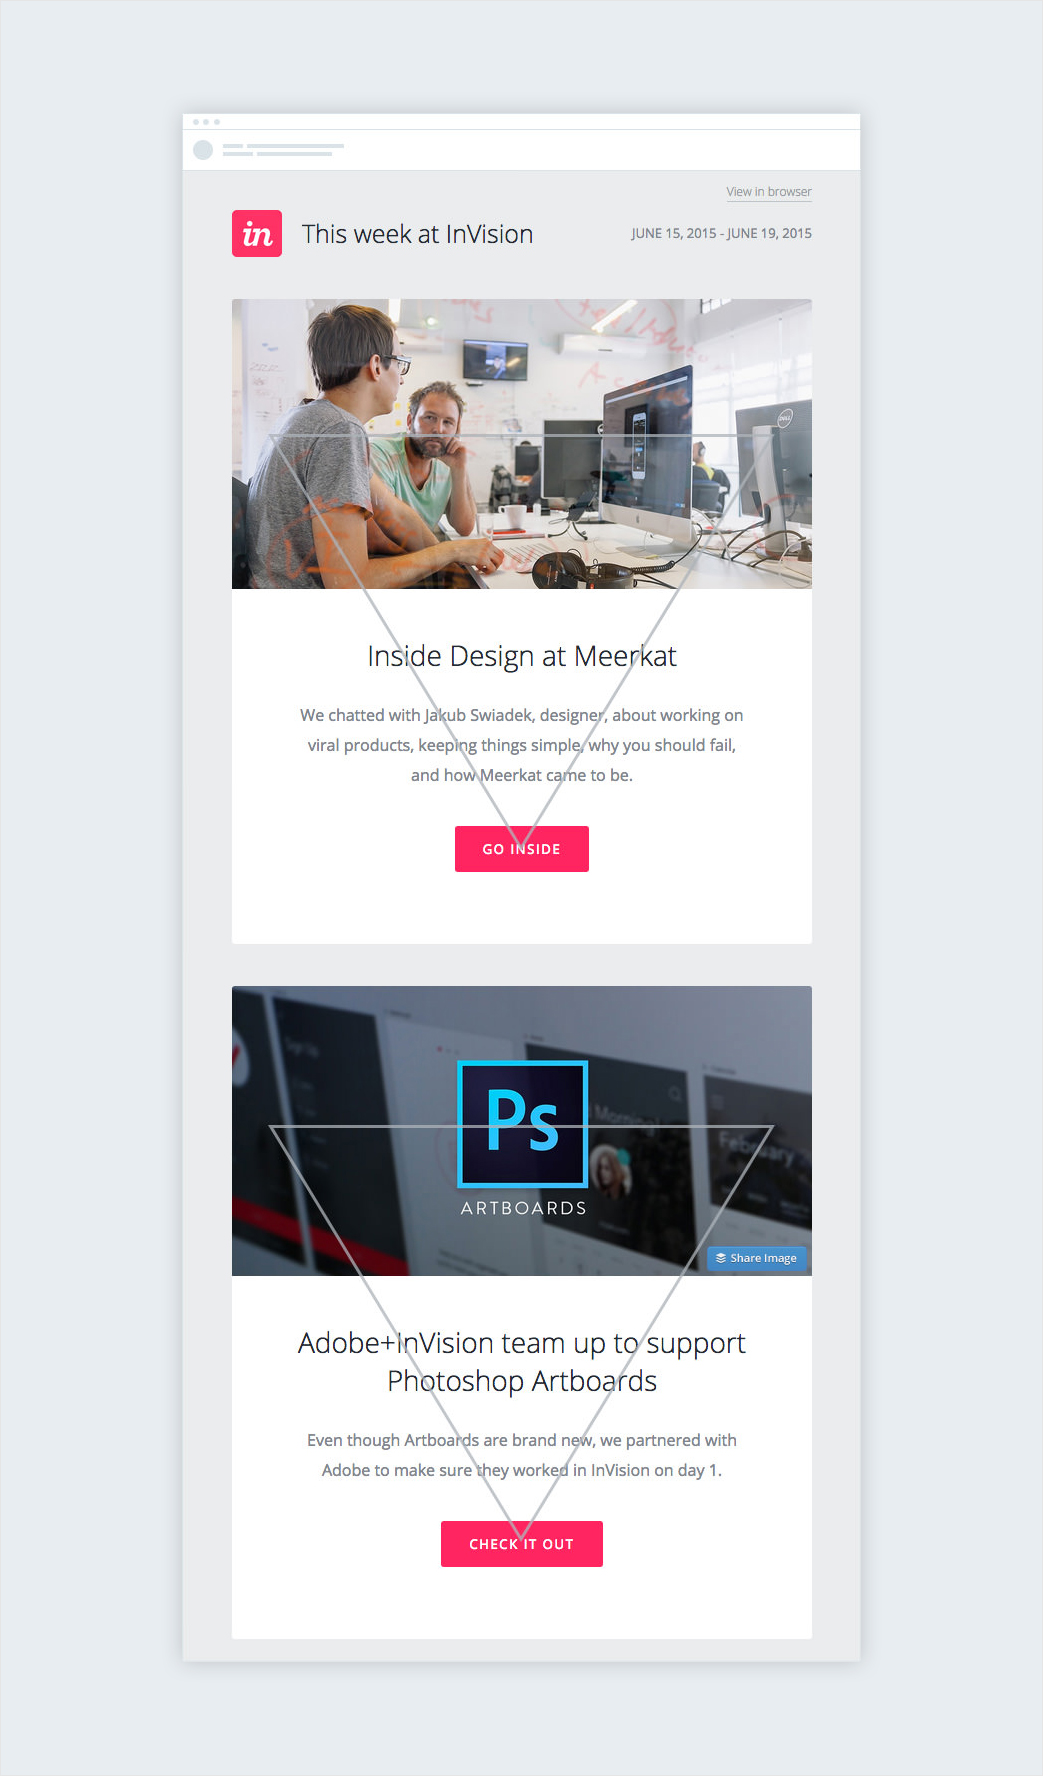 Create-a-Compelling-Call-to-Action newsletter design tips